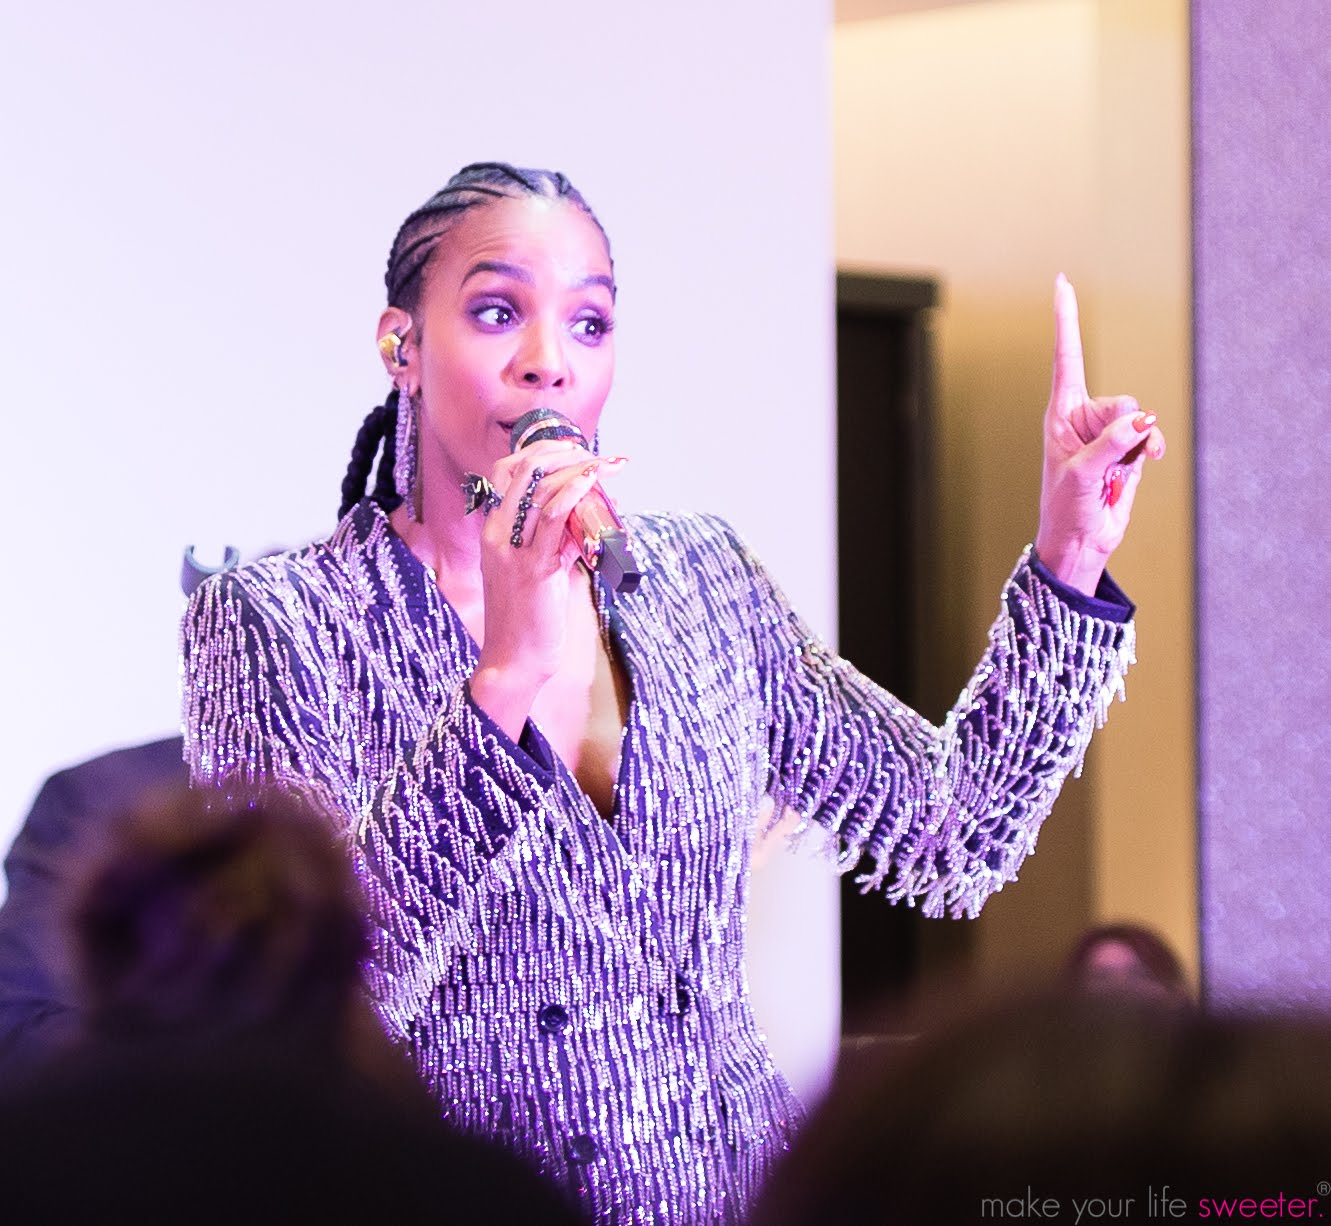 Kelly Rowland Performing at Neiman Marcus Hudson Yards Party - Make Your Life Sweeter Events -  Fluffpop Artisanal Cotton Candy Live Spin